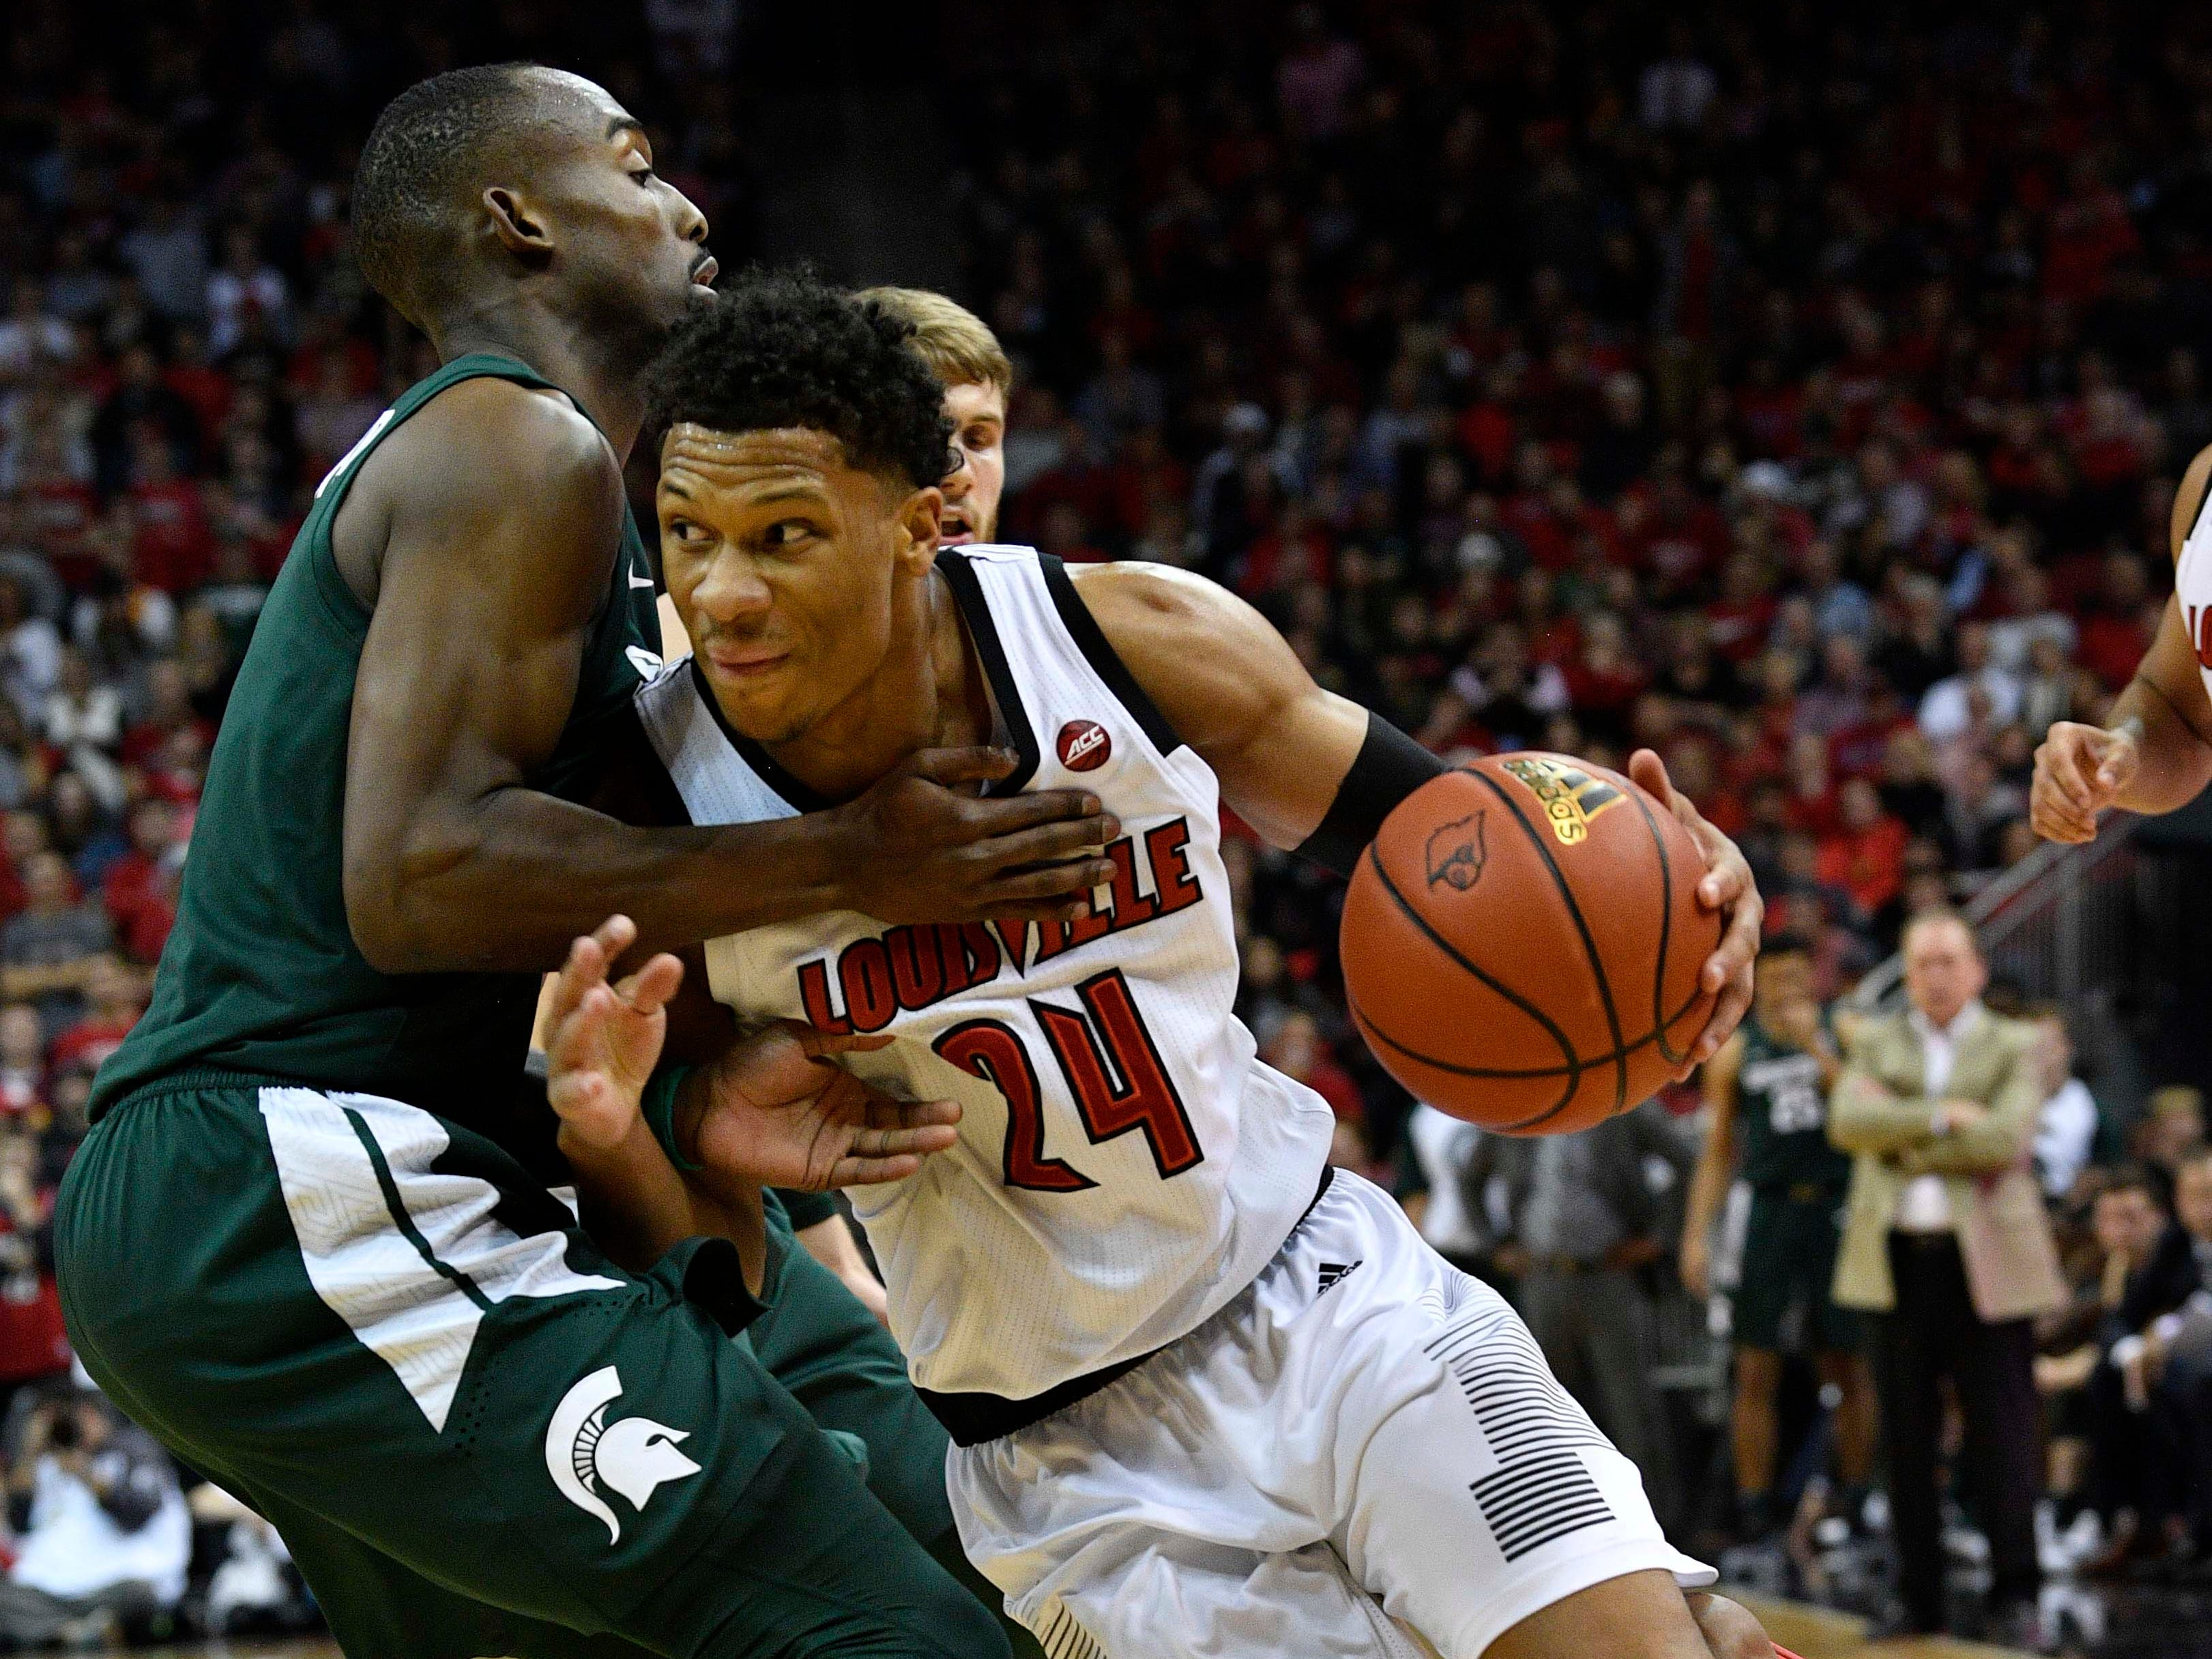 Louisville Cardinals forward Dwayne Sutton (24) dribbles against Michigan State Spartans guard Joshua Langford (1) during the second half at KFC Yum! Center. Louisville defeated Michigan State 82-78.